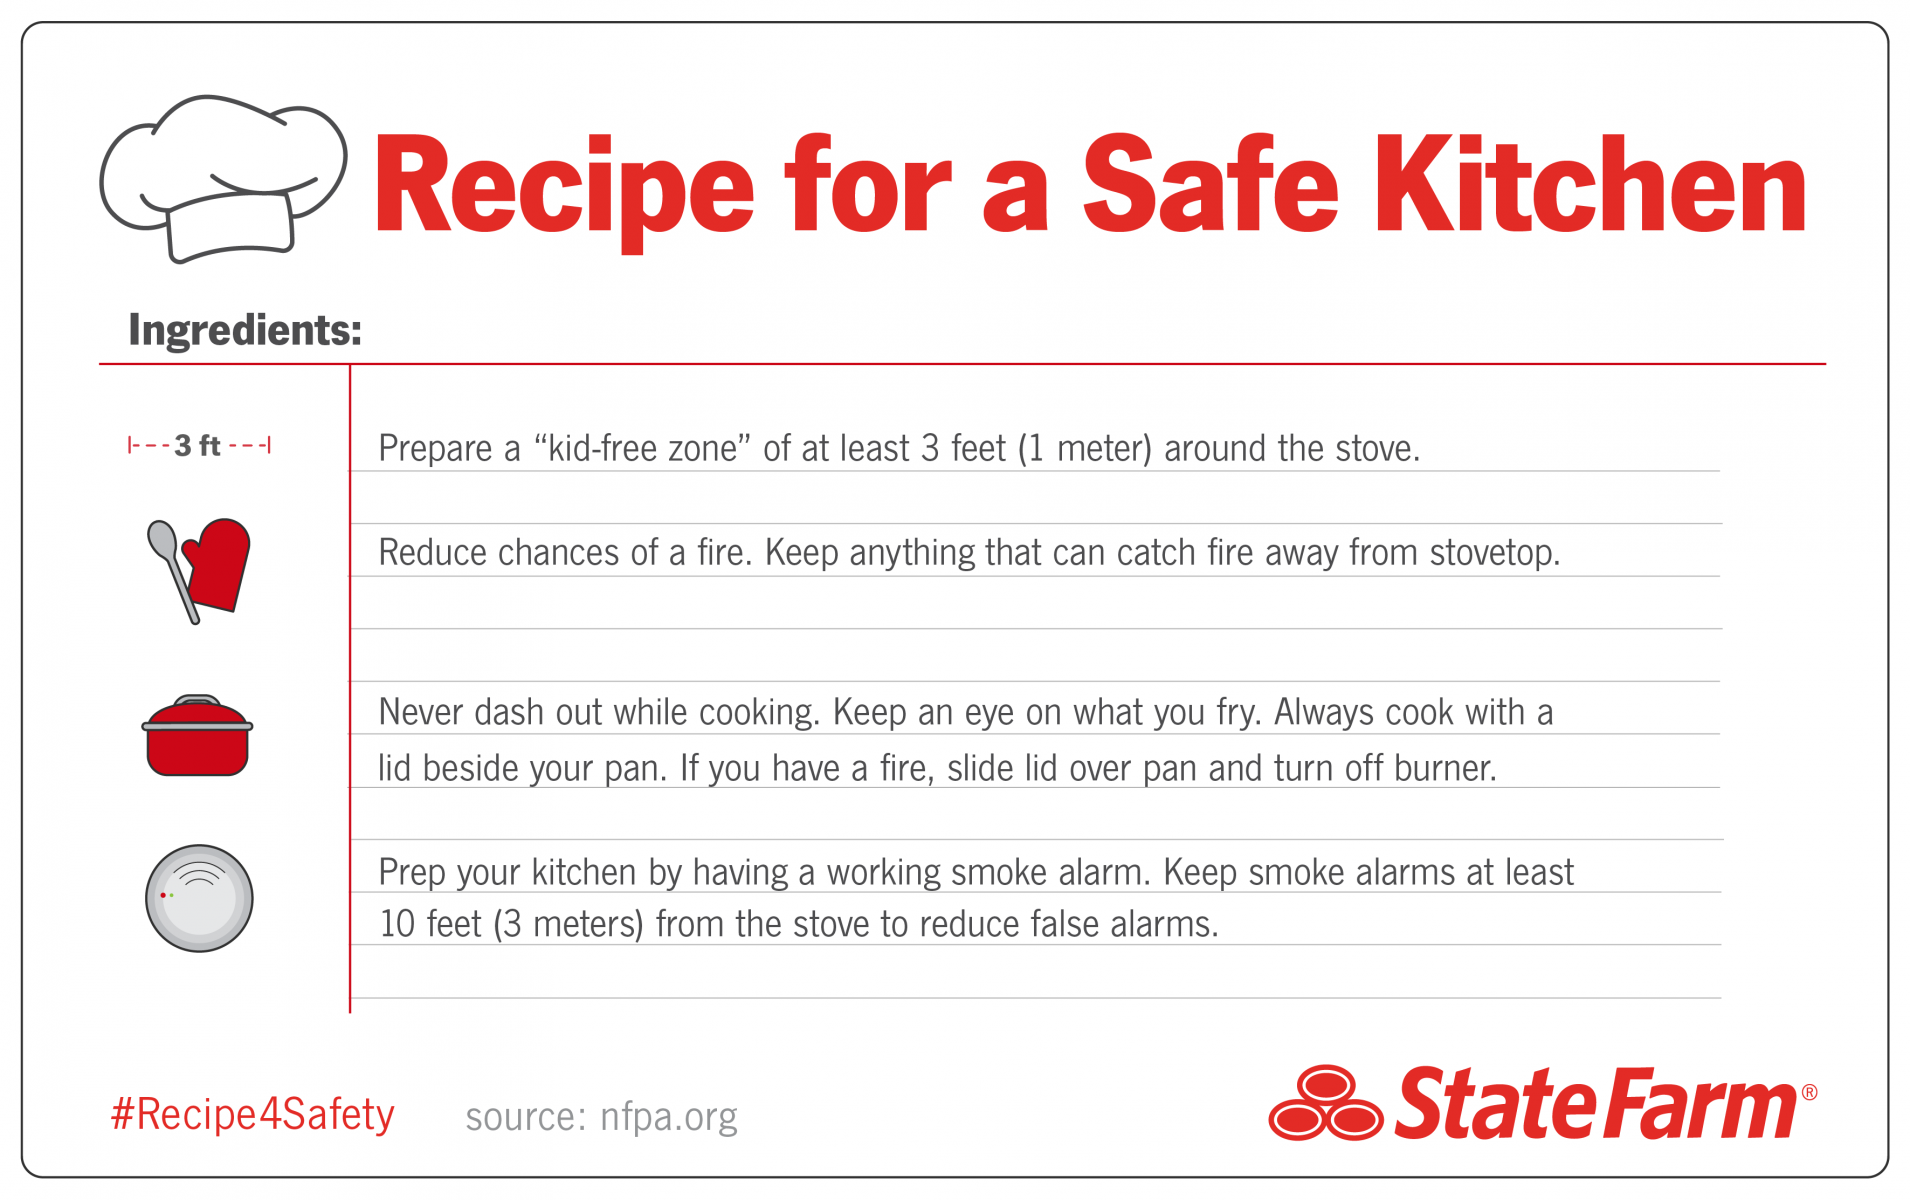 Recipe for a Safe Kitchen